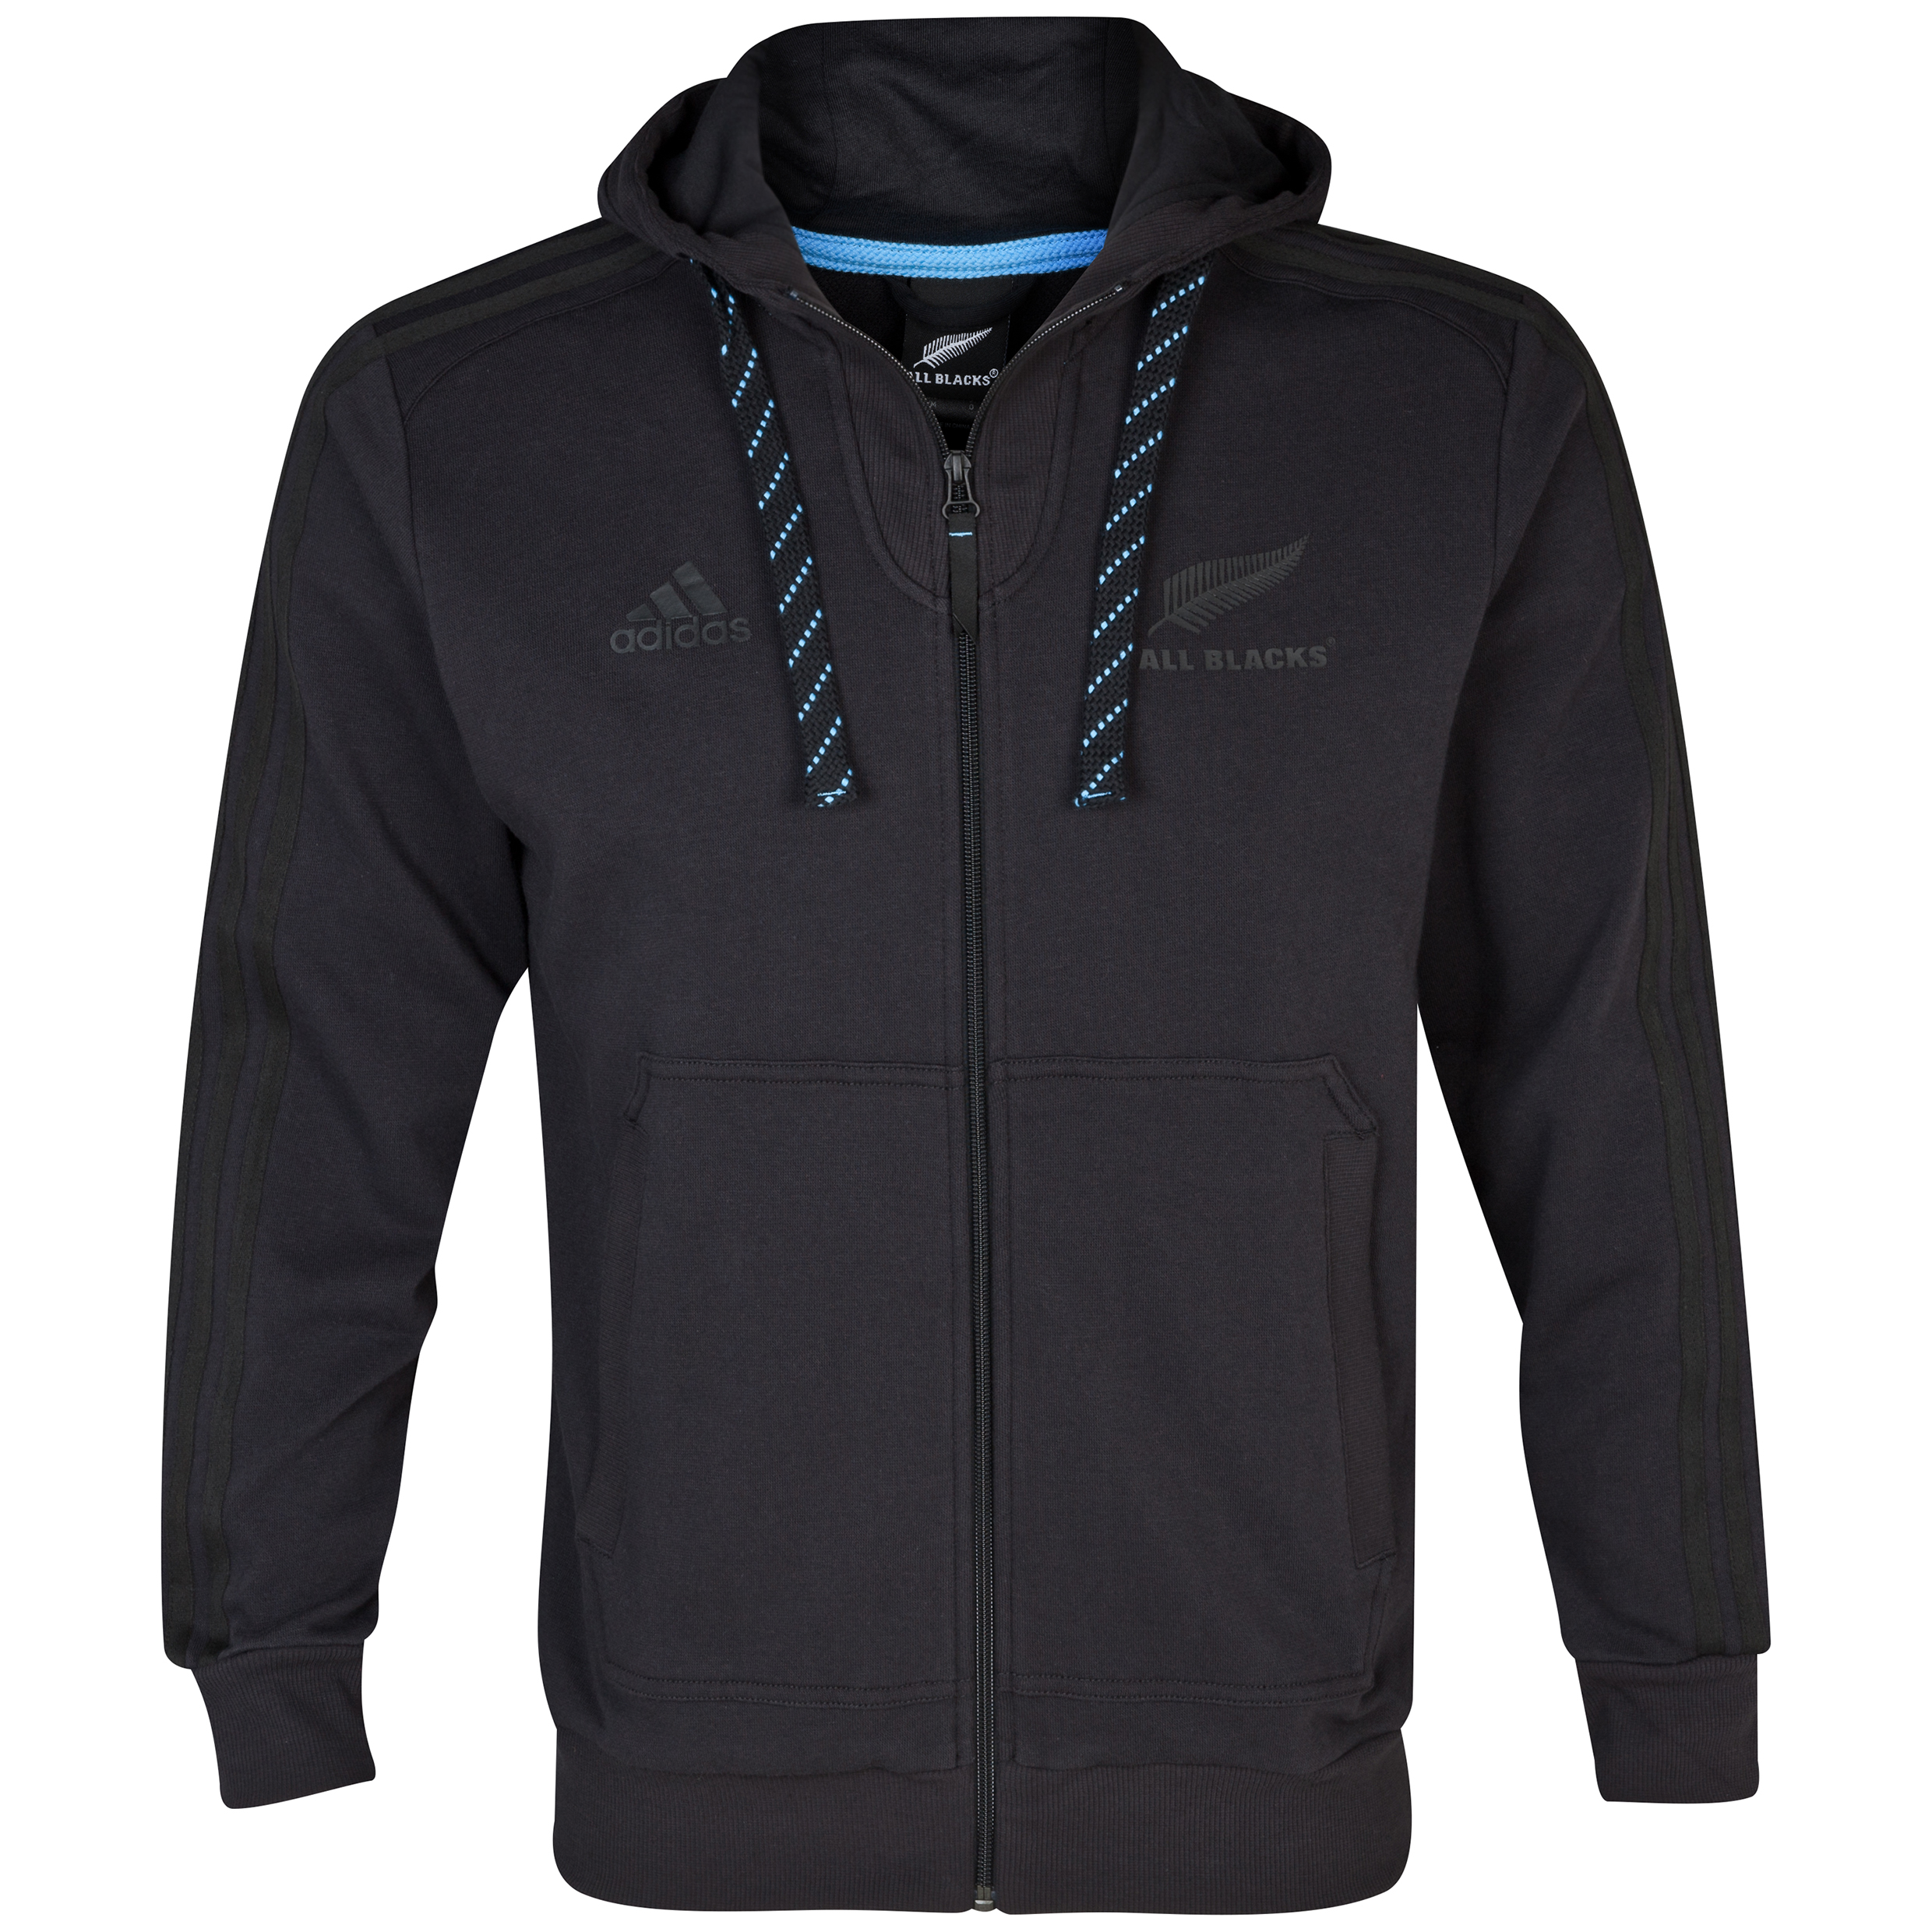 All Blacks Zip Hooded Top - Black